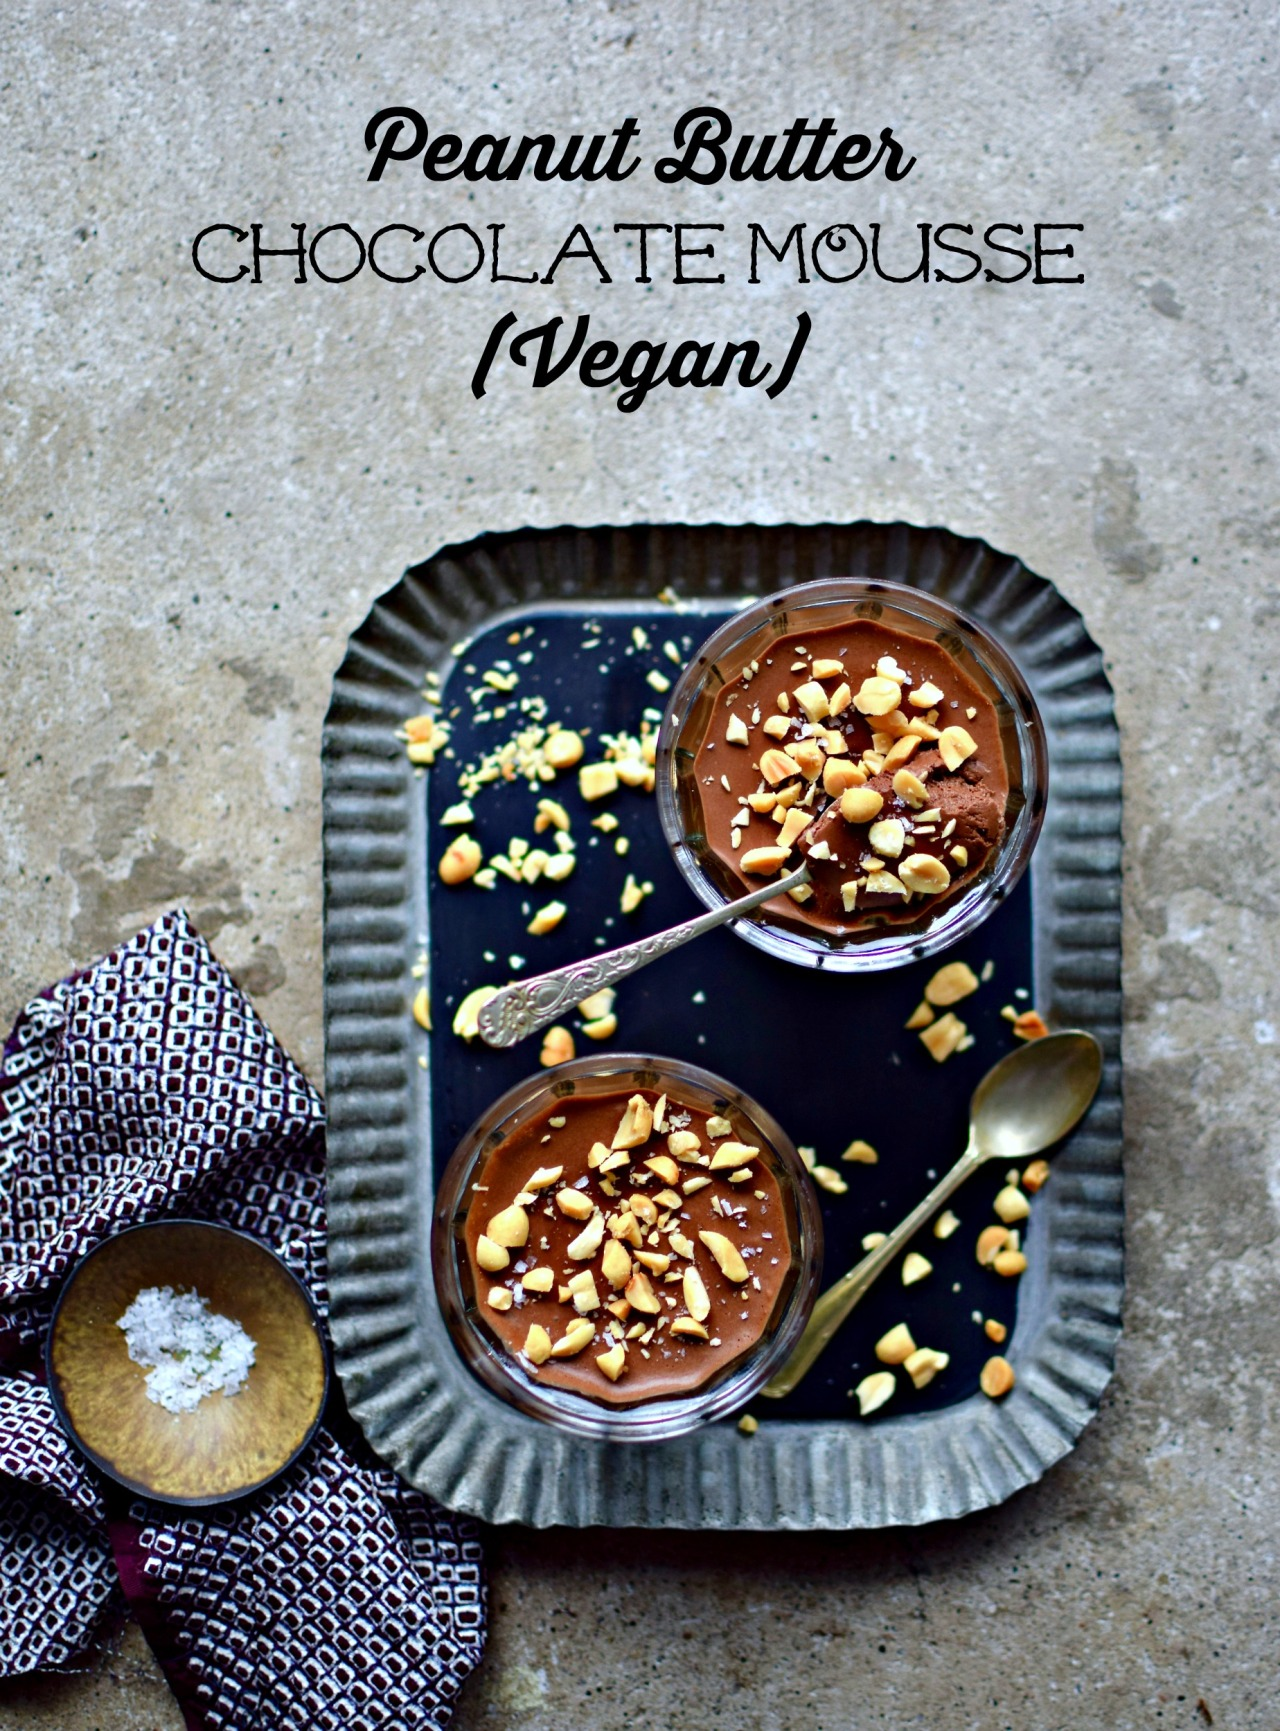 A slightly sweet, vegan chocolate moussemade withaquafabaand protein-packed peanut butter powder. Easy, light and perfect for a family or special occasion dessert. Top with crushed salted peanuts or pretzels for a flavour and texture contrast.